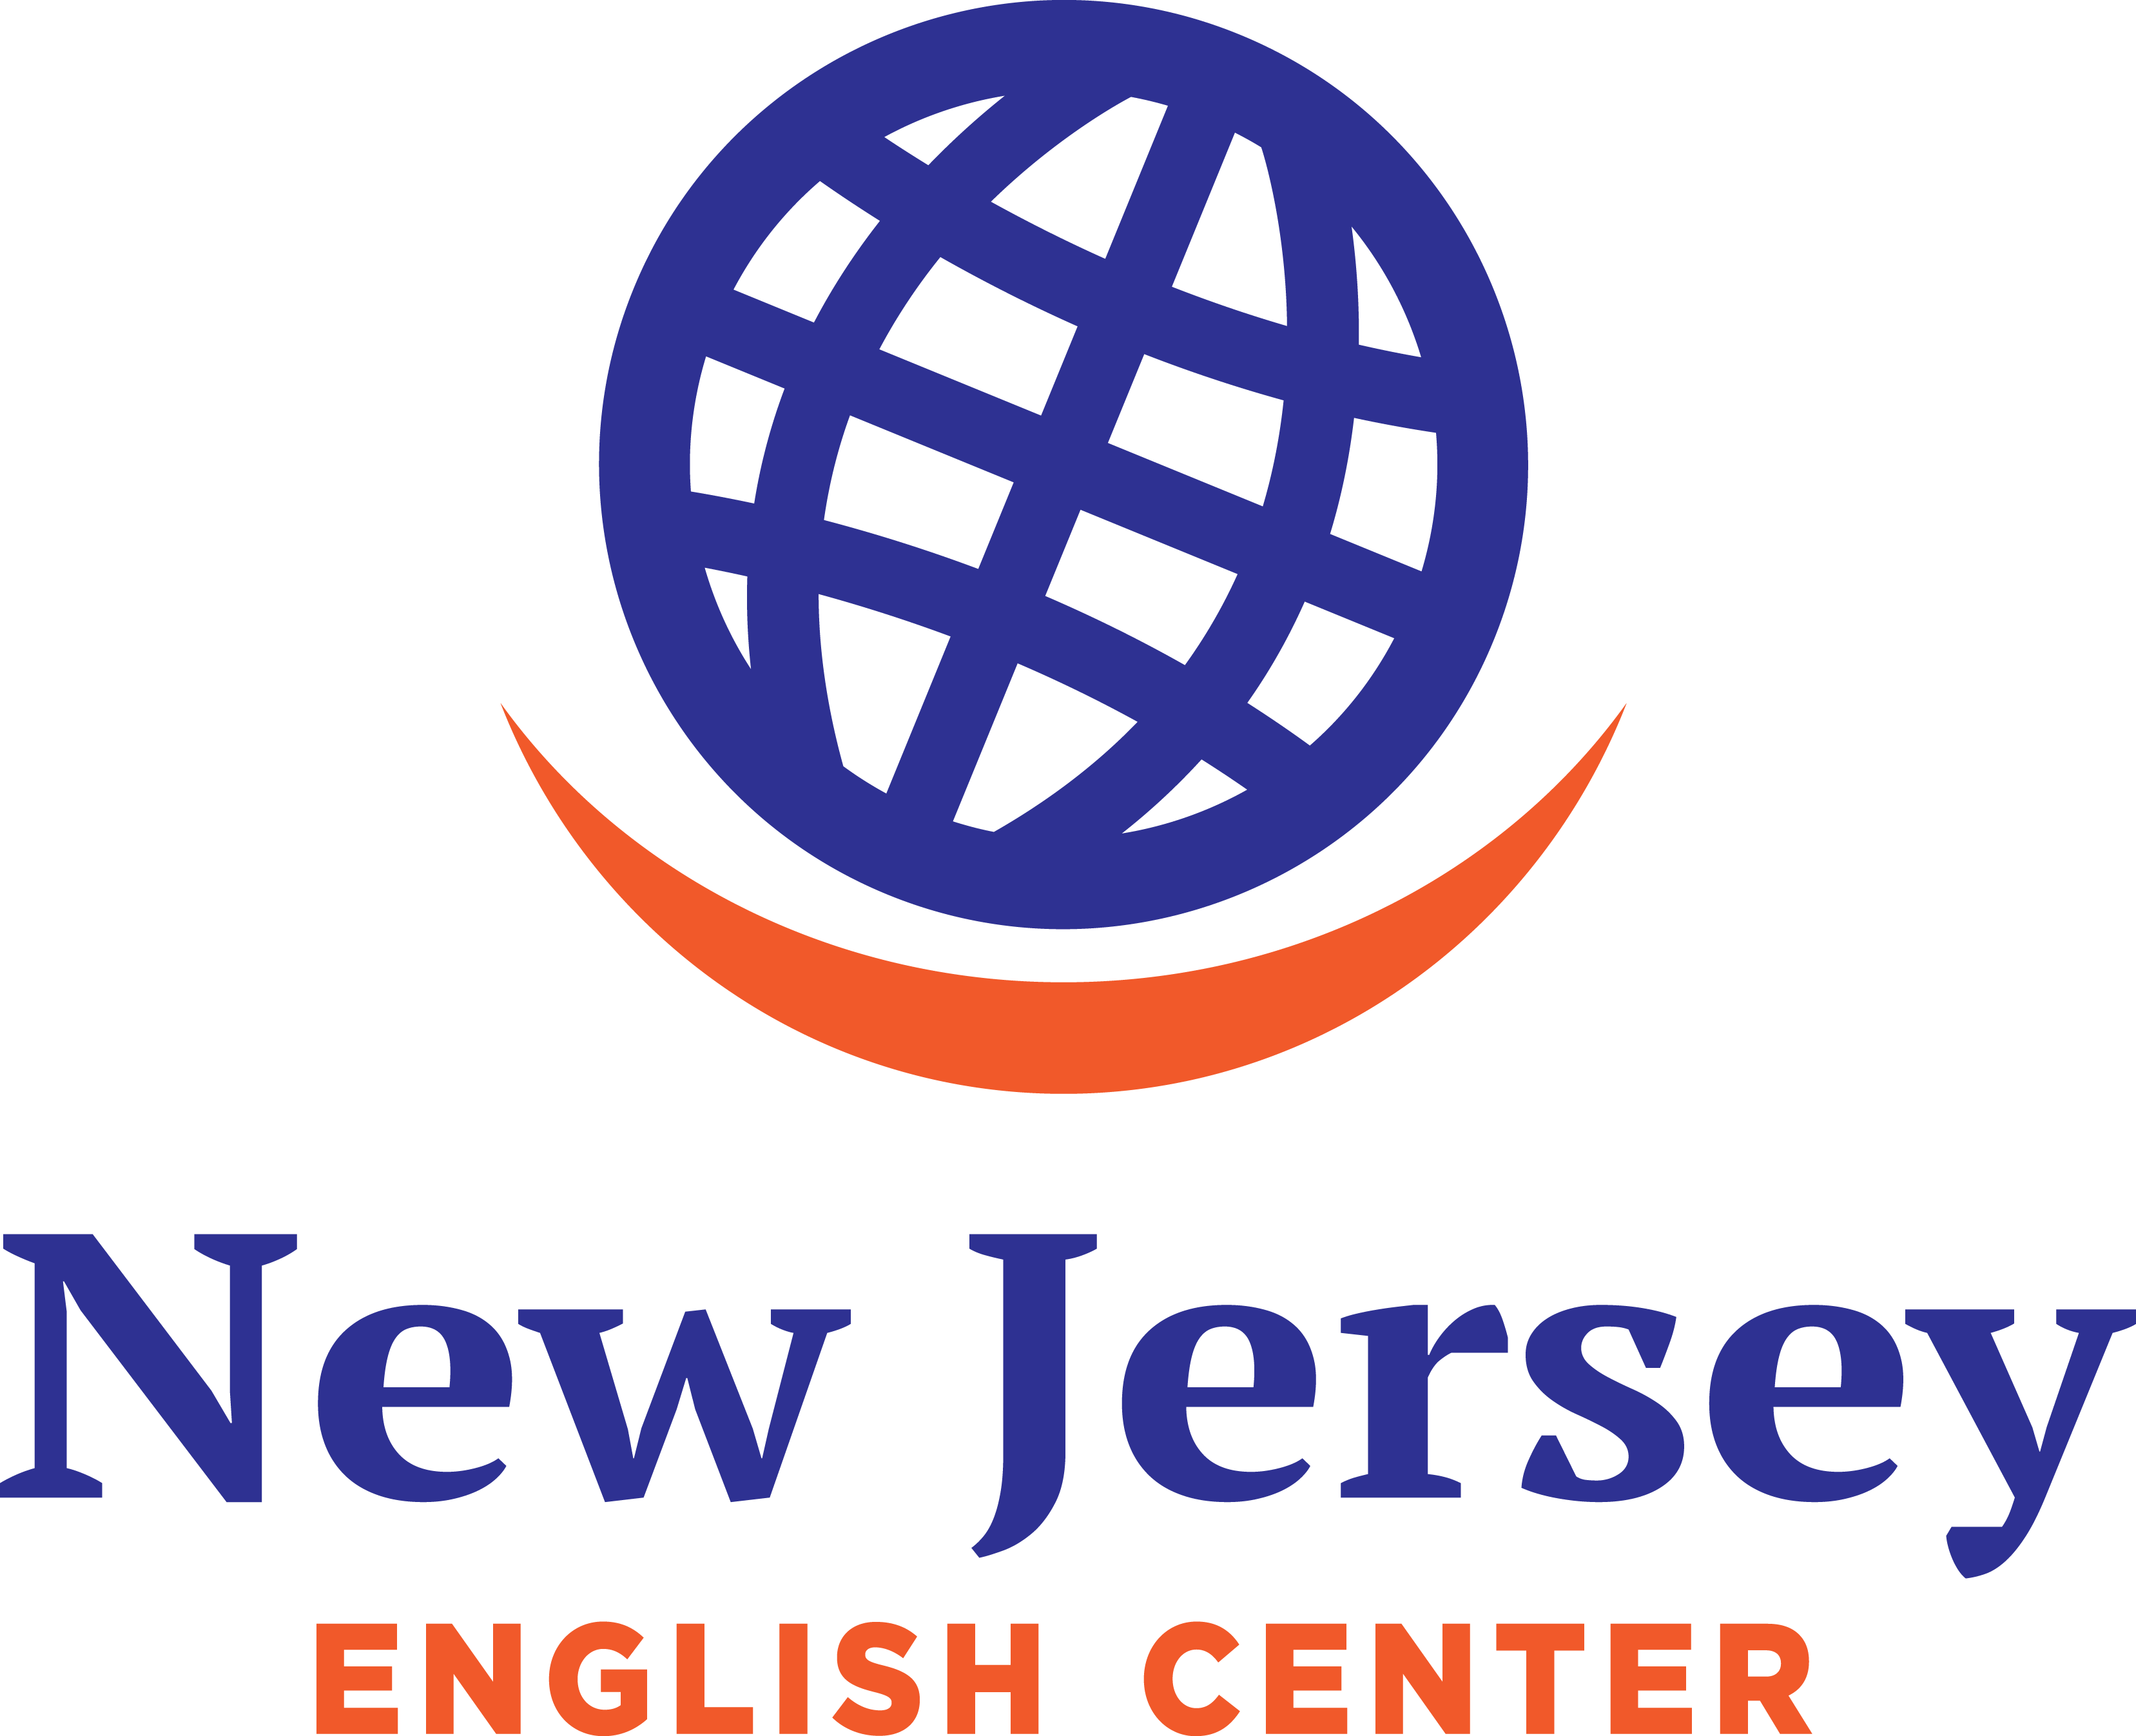 New Jersey English Center